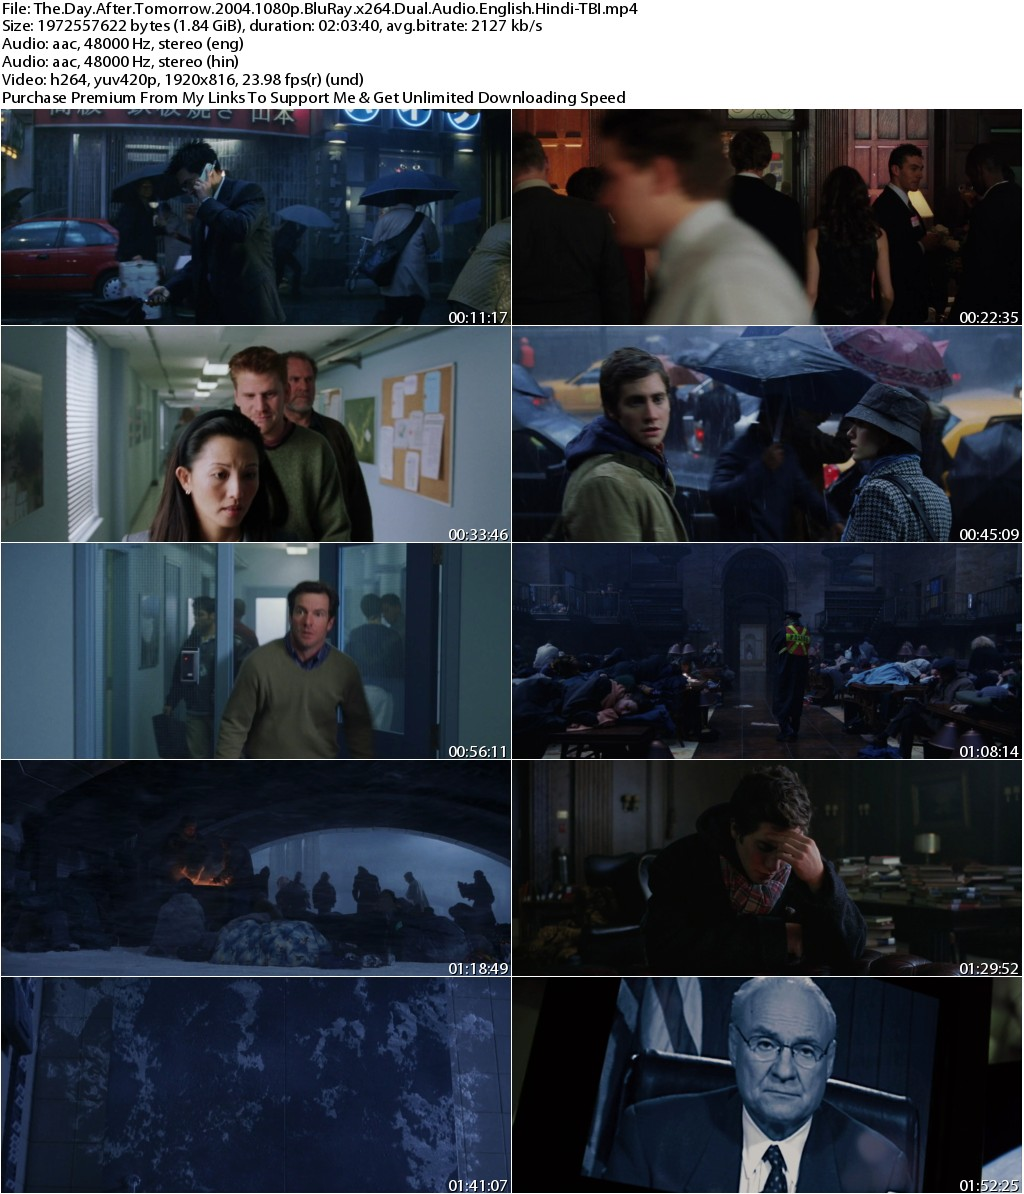 The Day After Tomorrow (2004) 1080p BluRay x264 Dual Audio [English+Hindi]-TBI